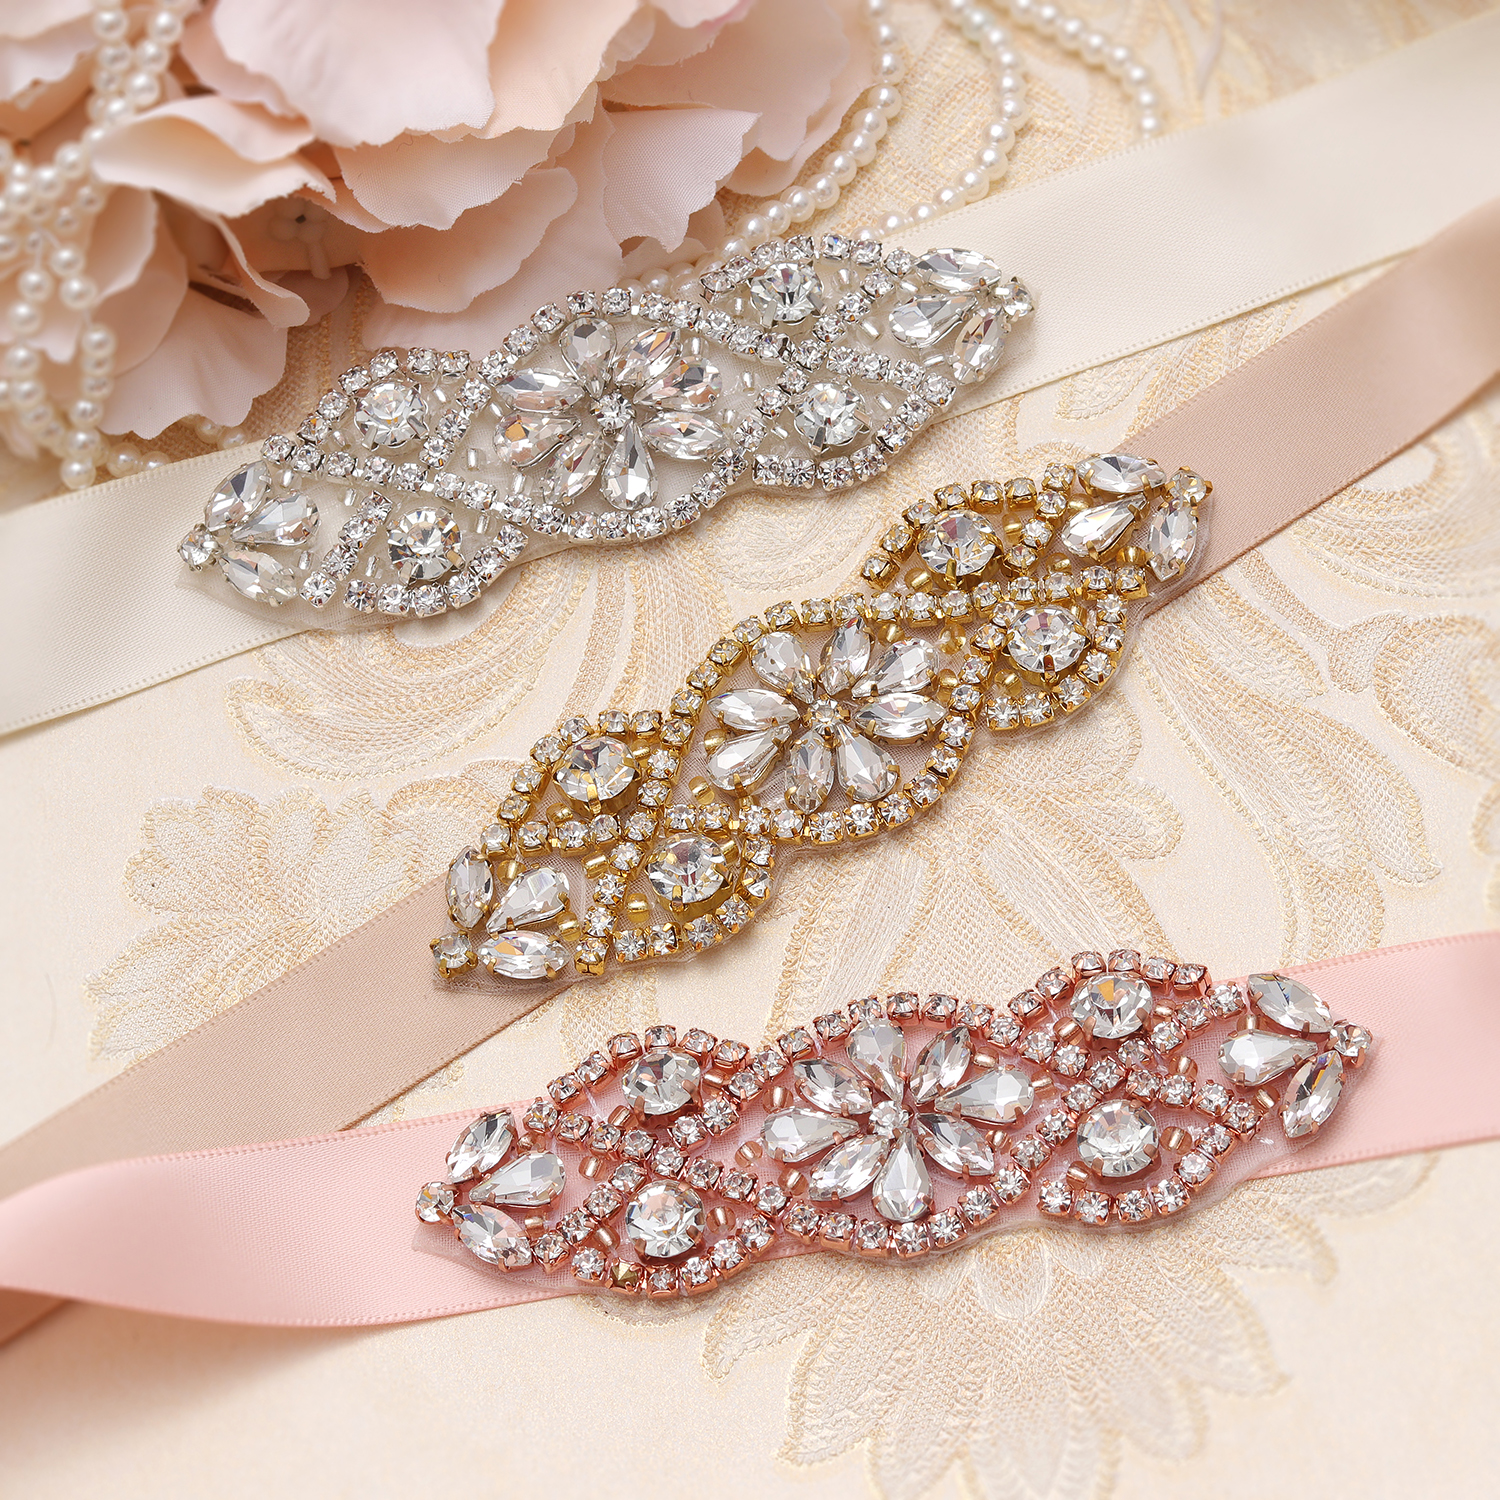 MissRDress Hand Beaded Wedding Belt Silver Crystal Bridal Sash Rhinestones Bridal Belt For Wedding Party Porm Gown JK853